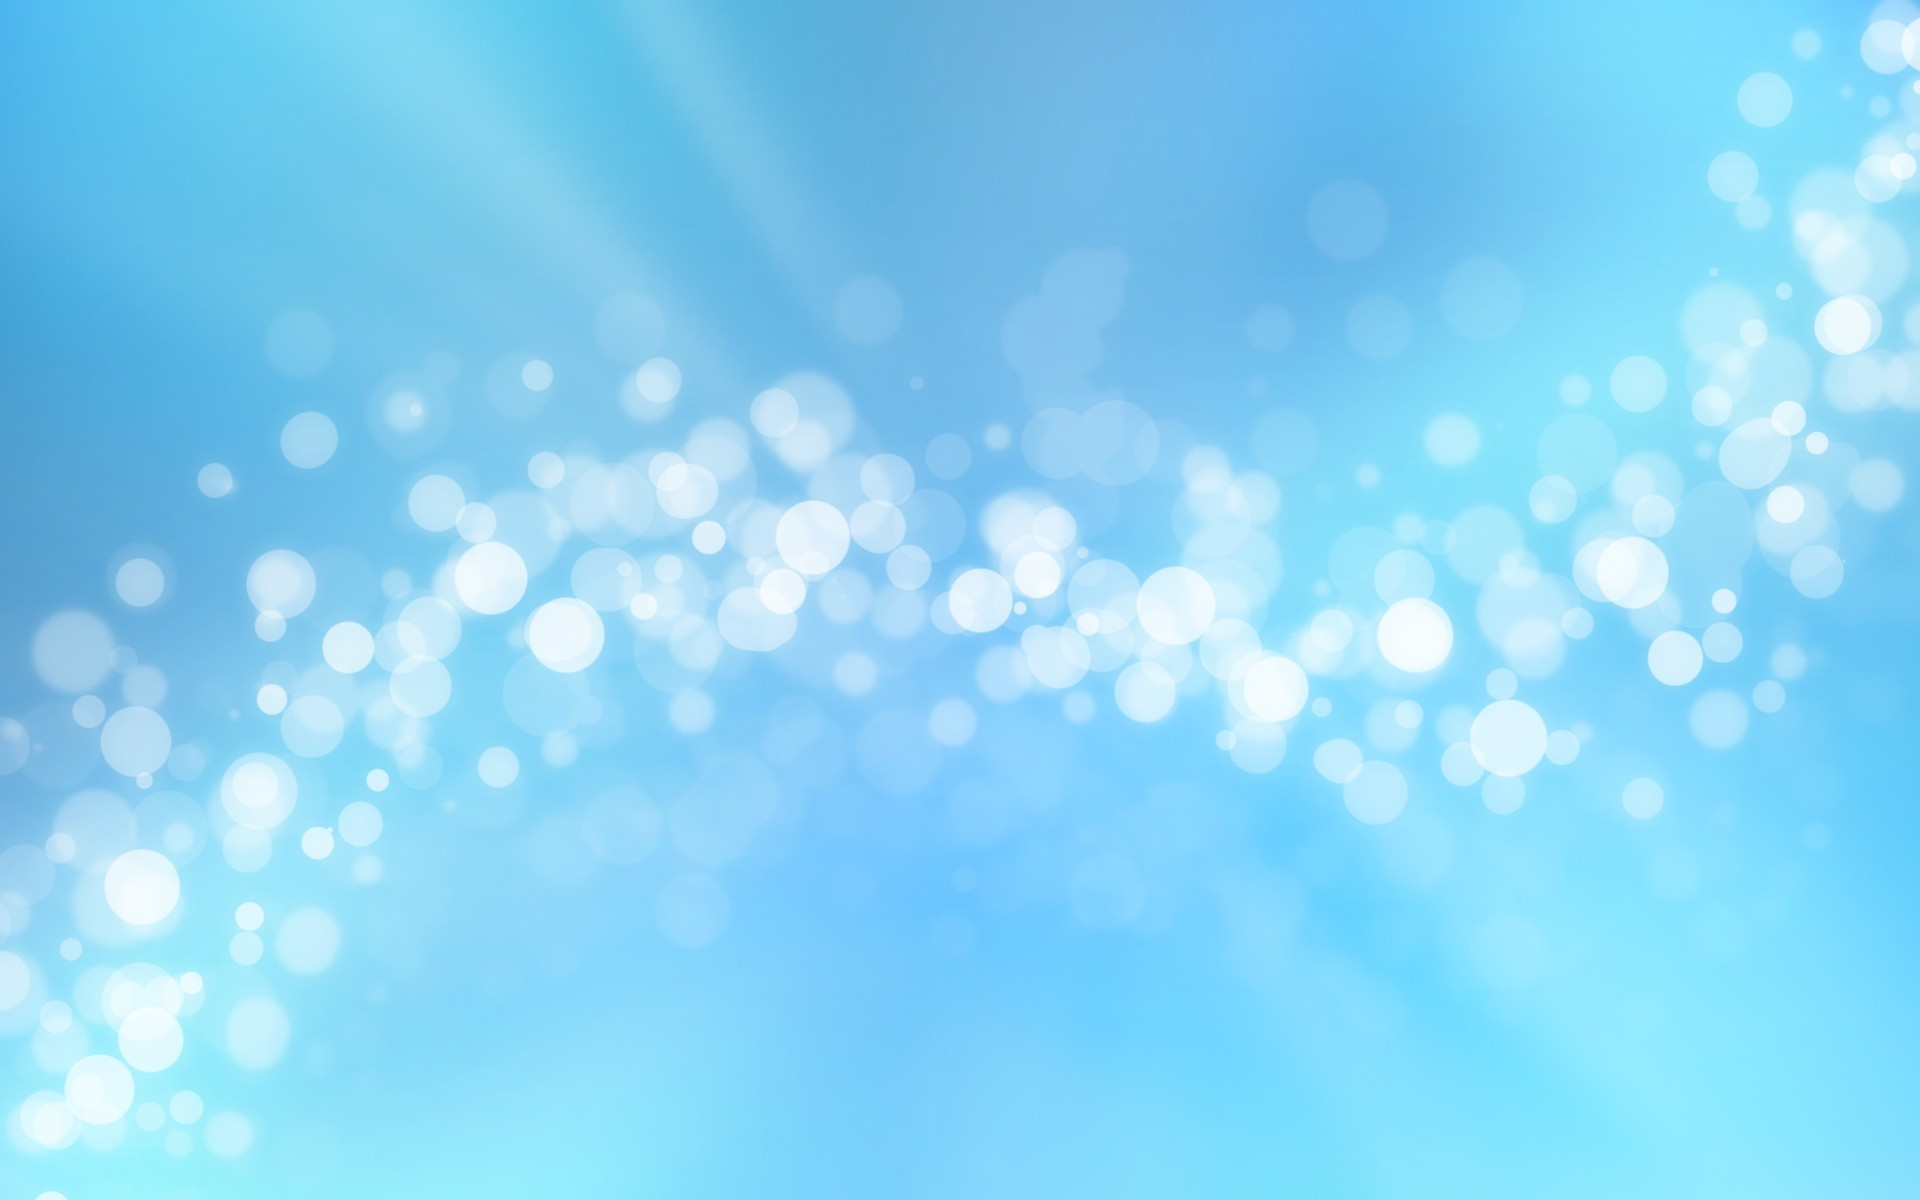 Light Blue Background Download Free Beautiful Wallpapers For